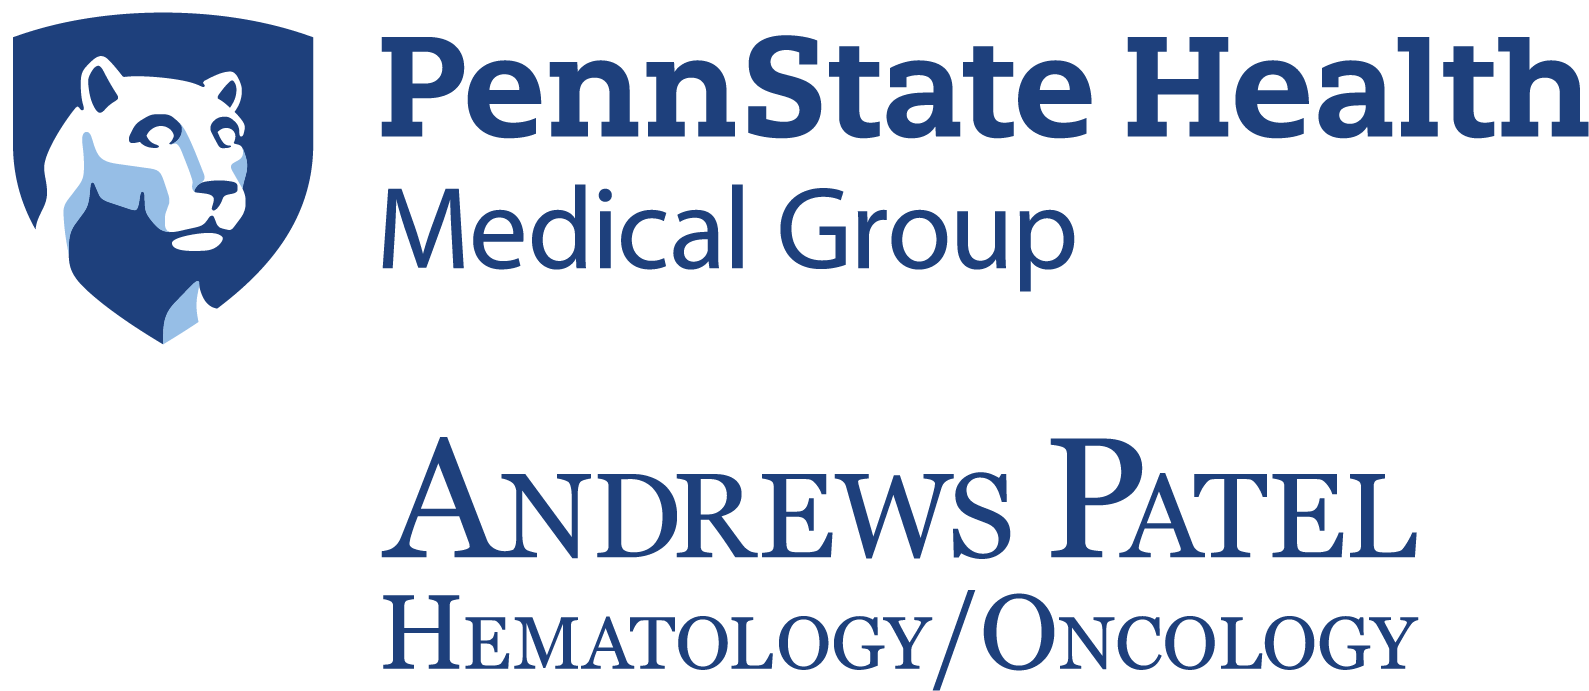 Penn State Health Medical Group